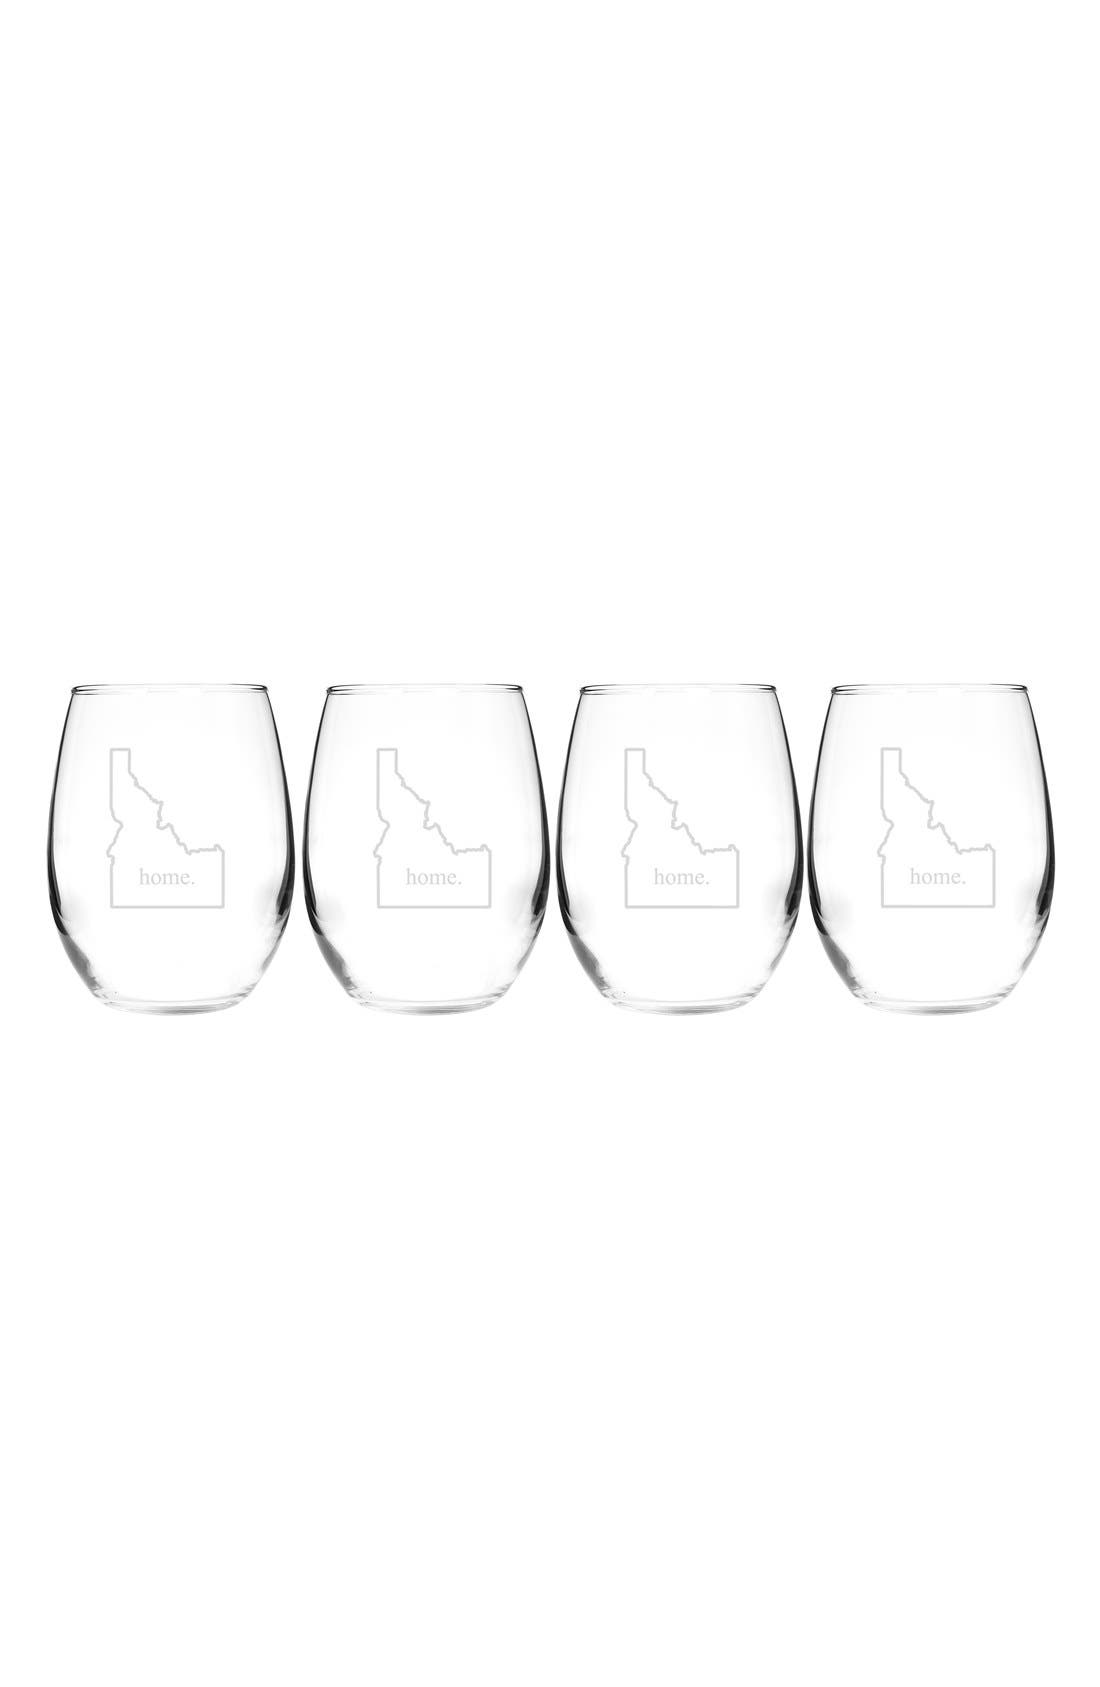 Home State Set of 4 Stemless Wine Glasses,                             Main thumbnail 14, color,